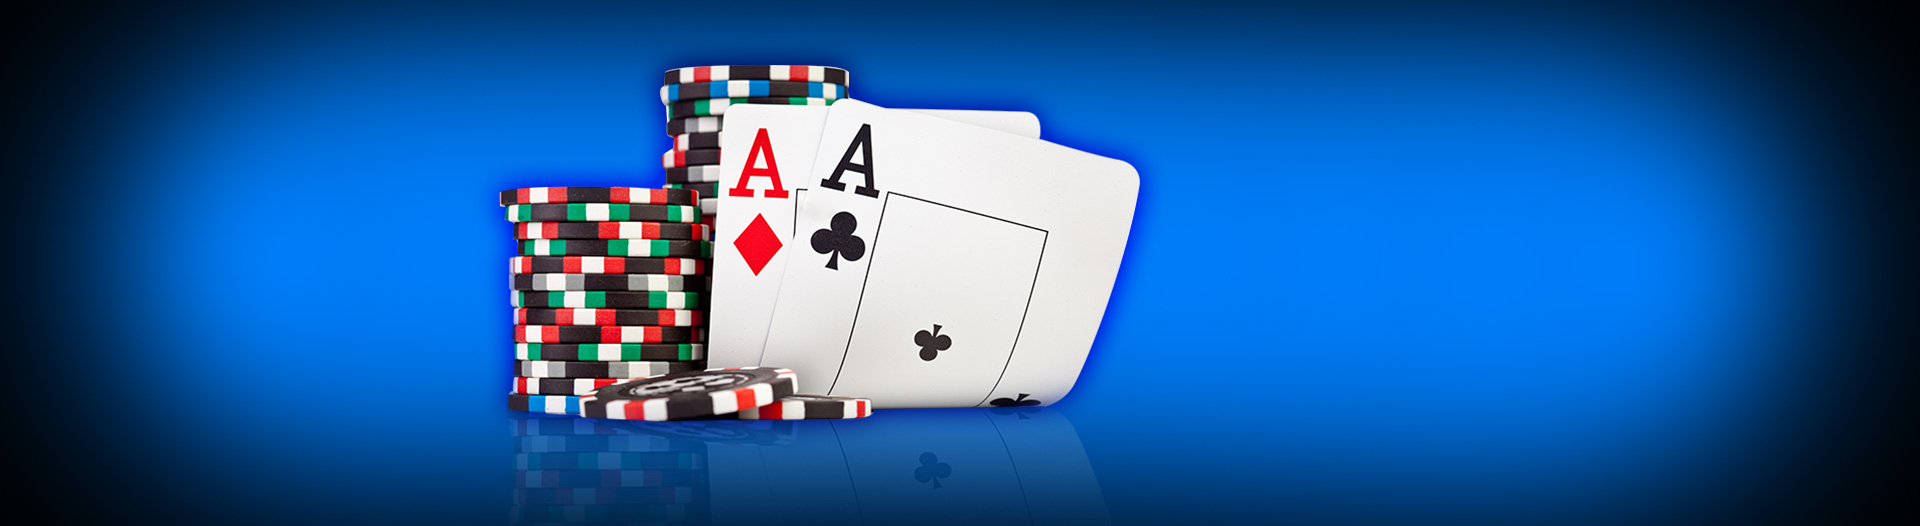 888 poker deutsch download